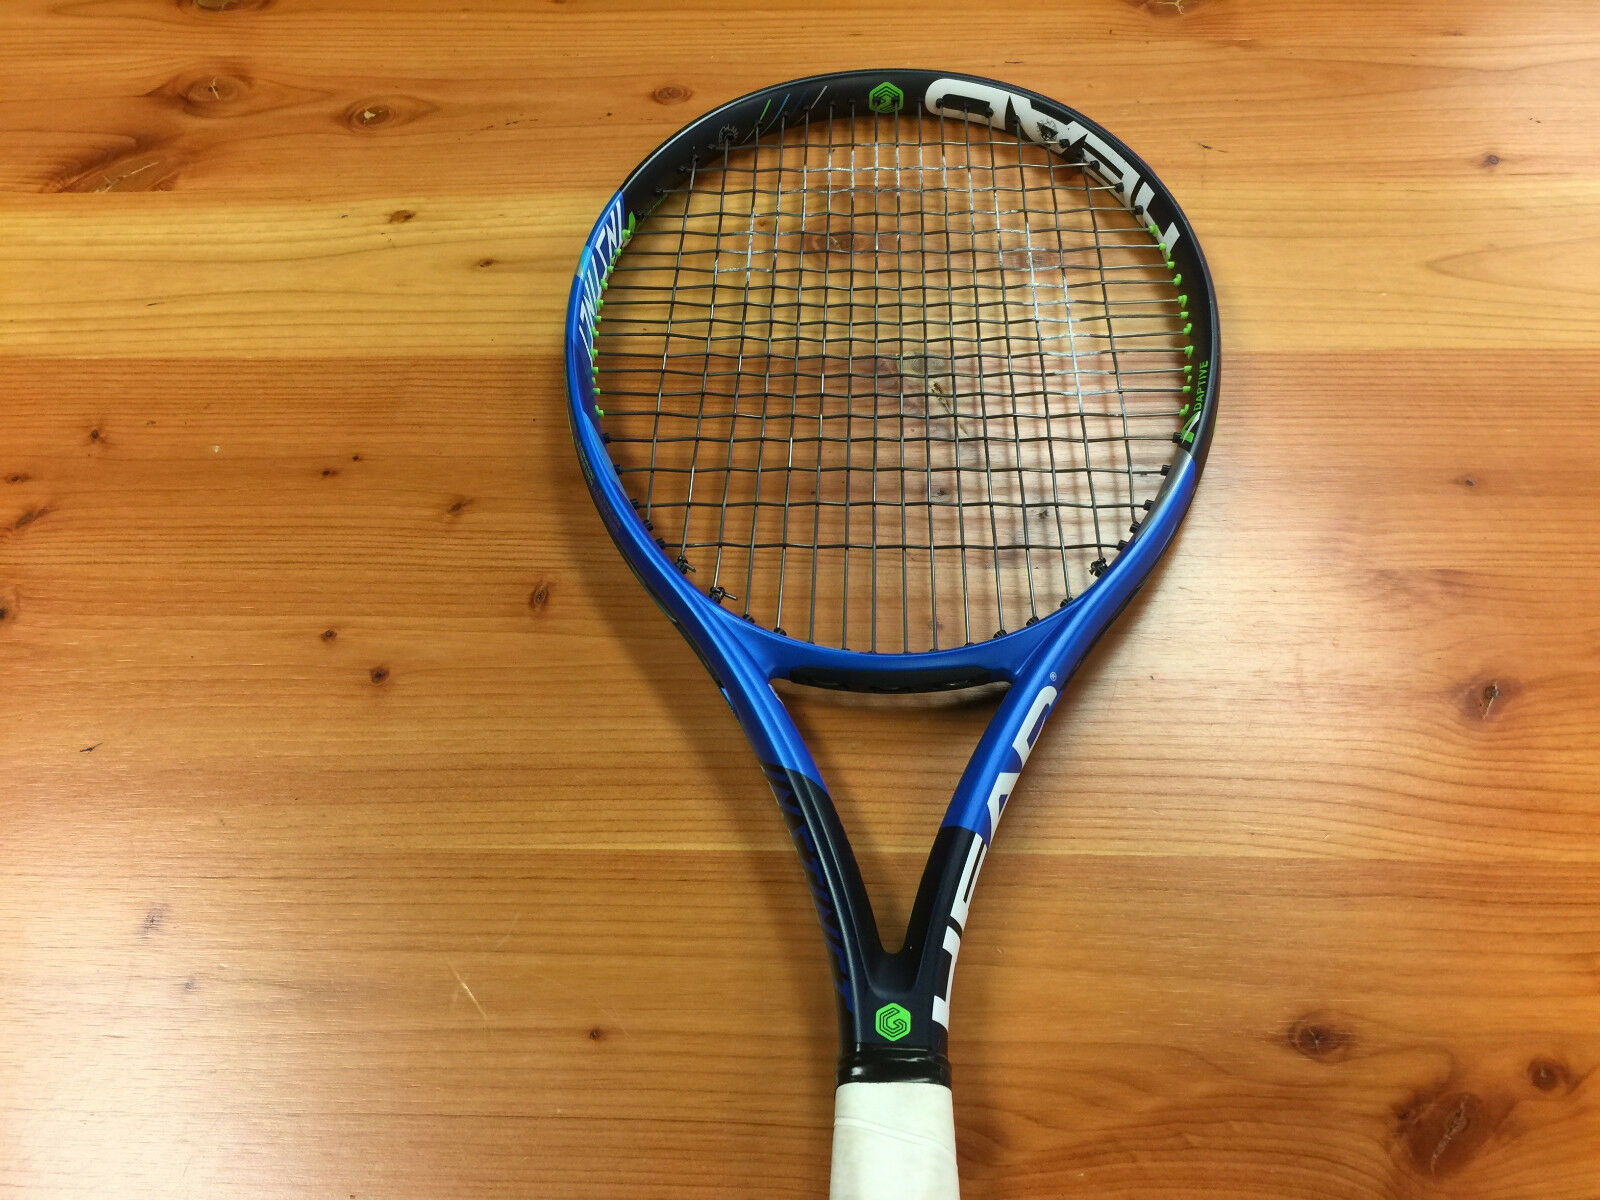 Used Adaptive Head Graphene Touch Instinct Adaptive Used Grip 4_3/8 Tennis Racquet bbf41c